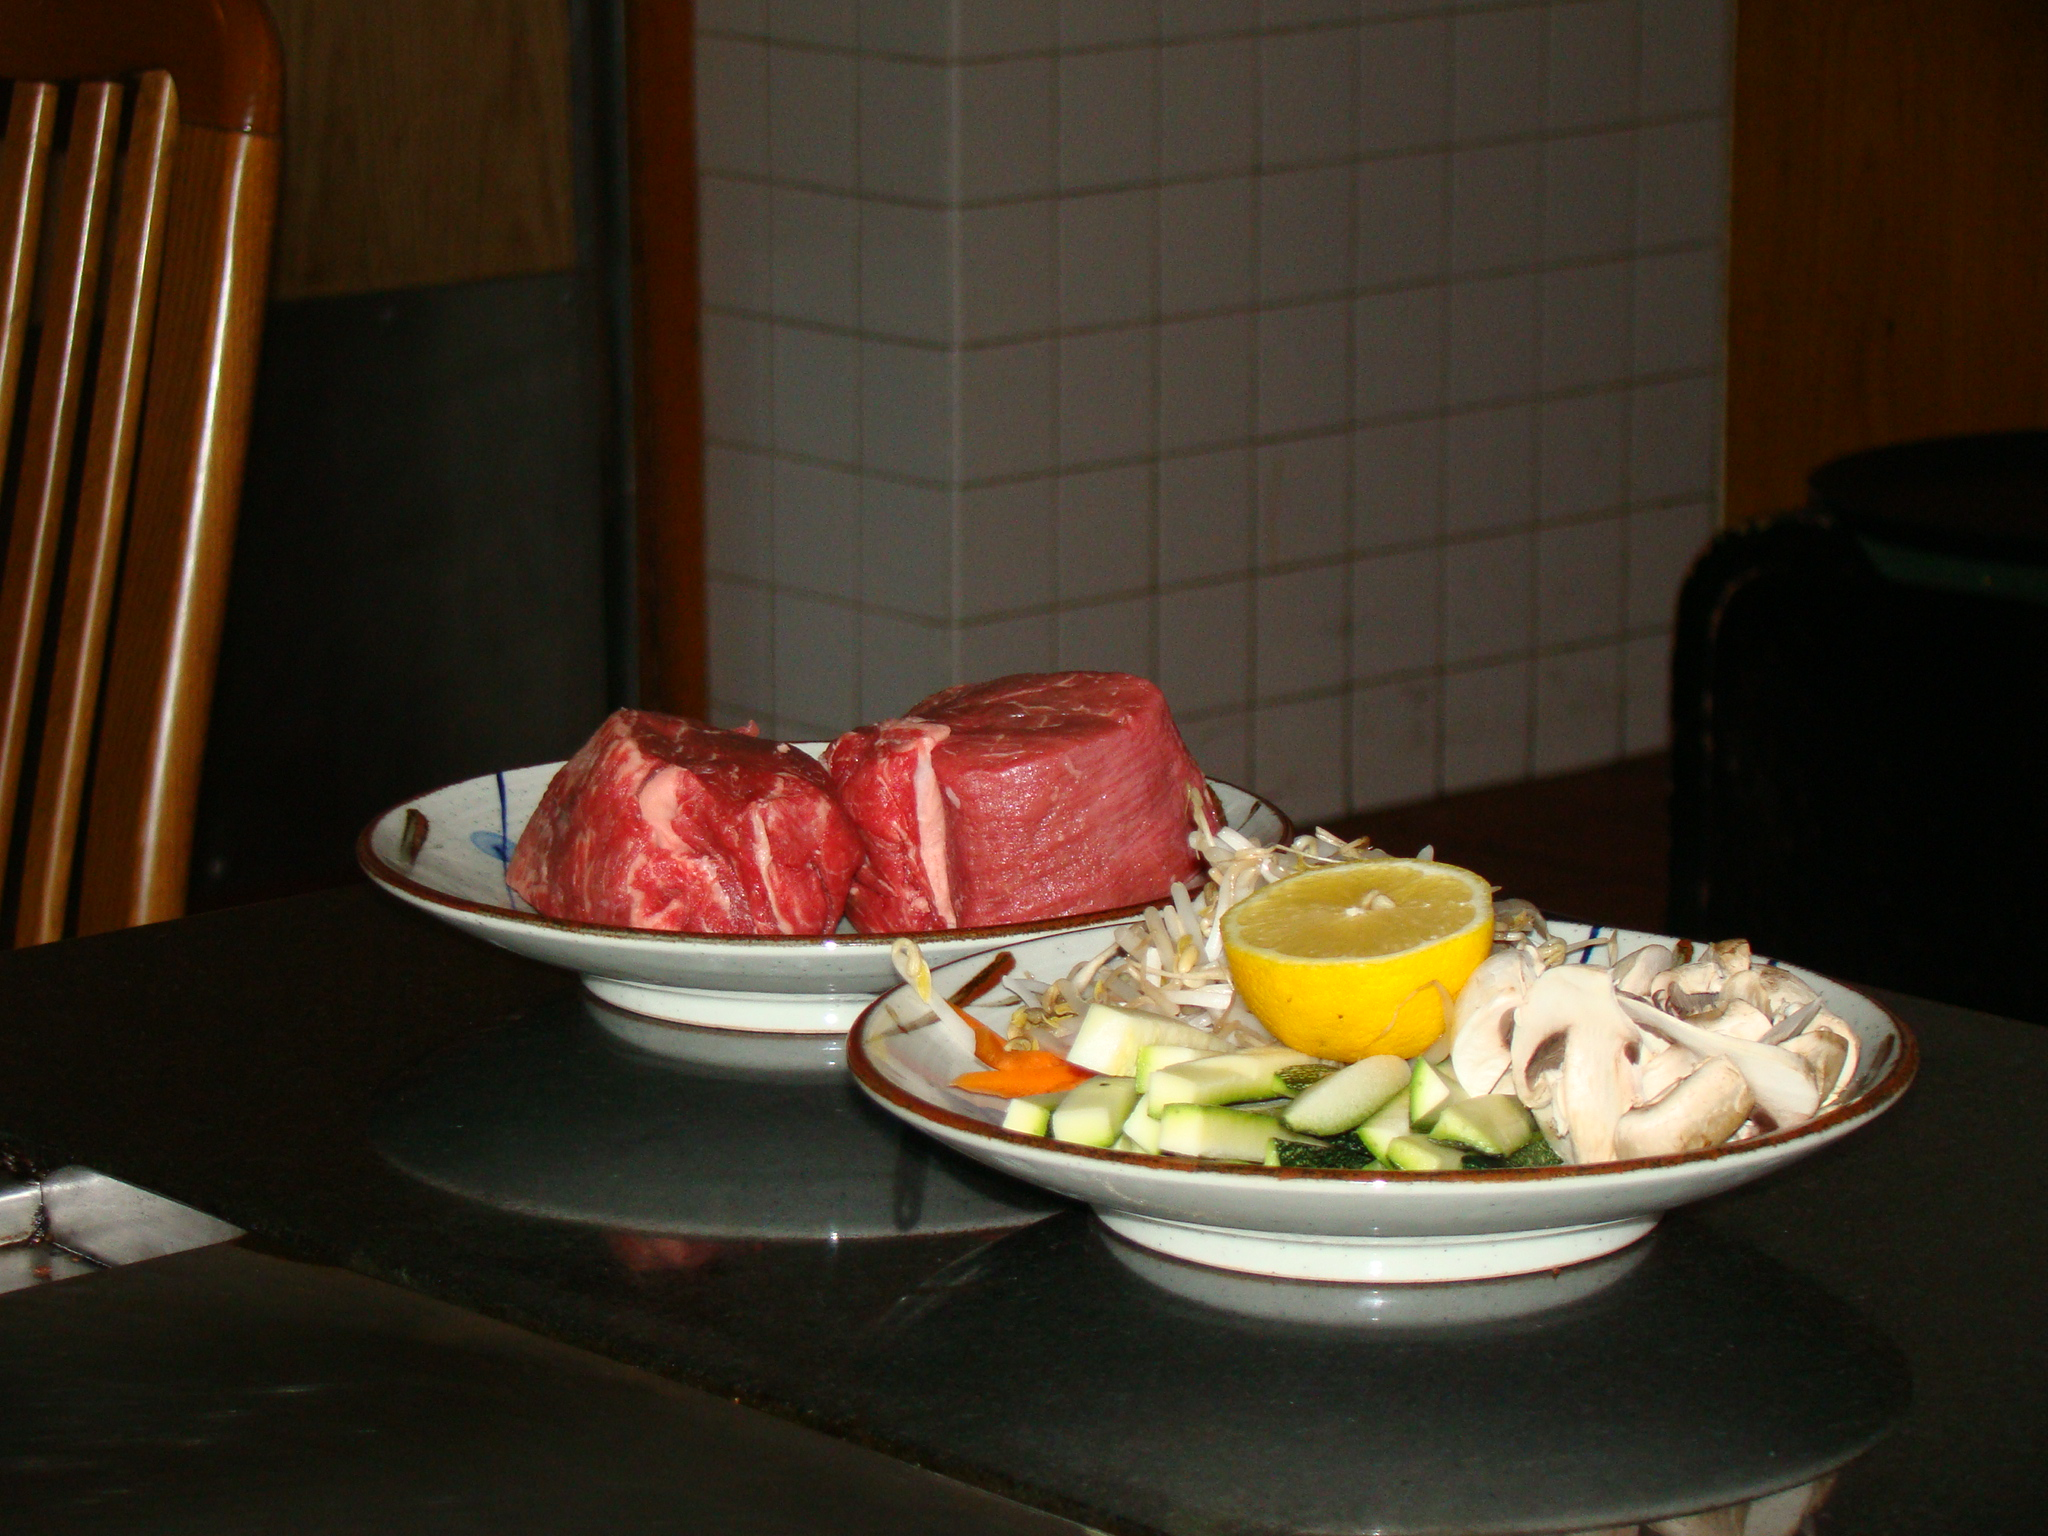 Filets and Vegetables